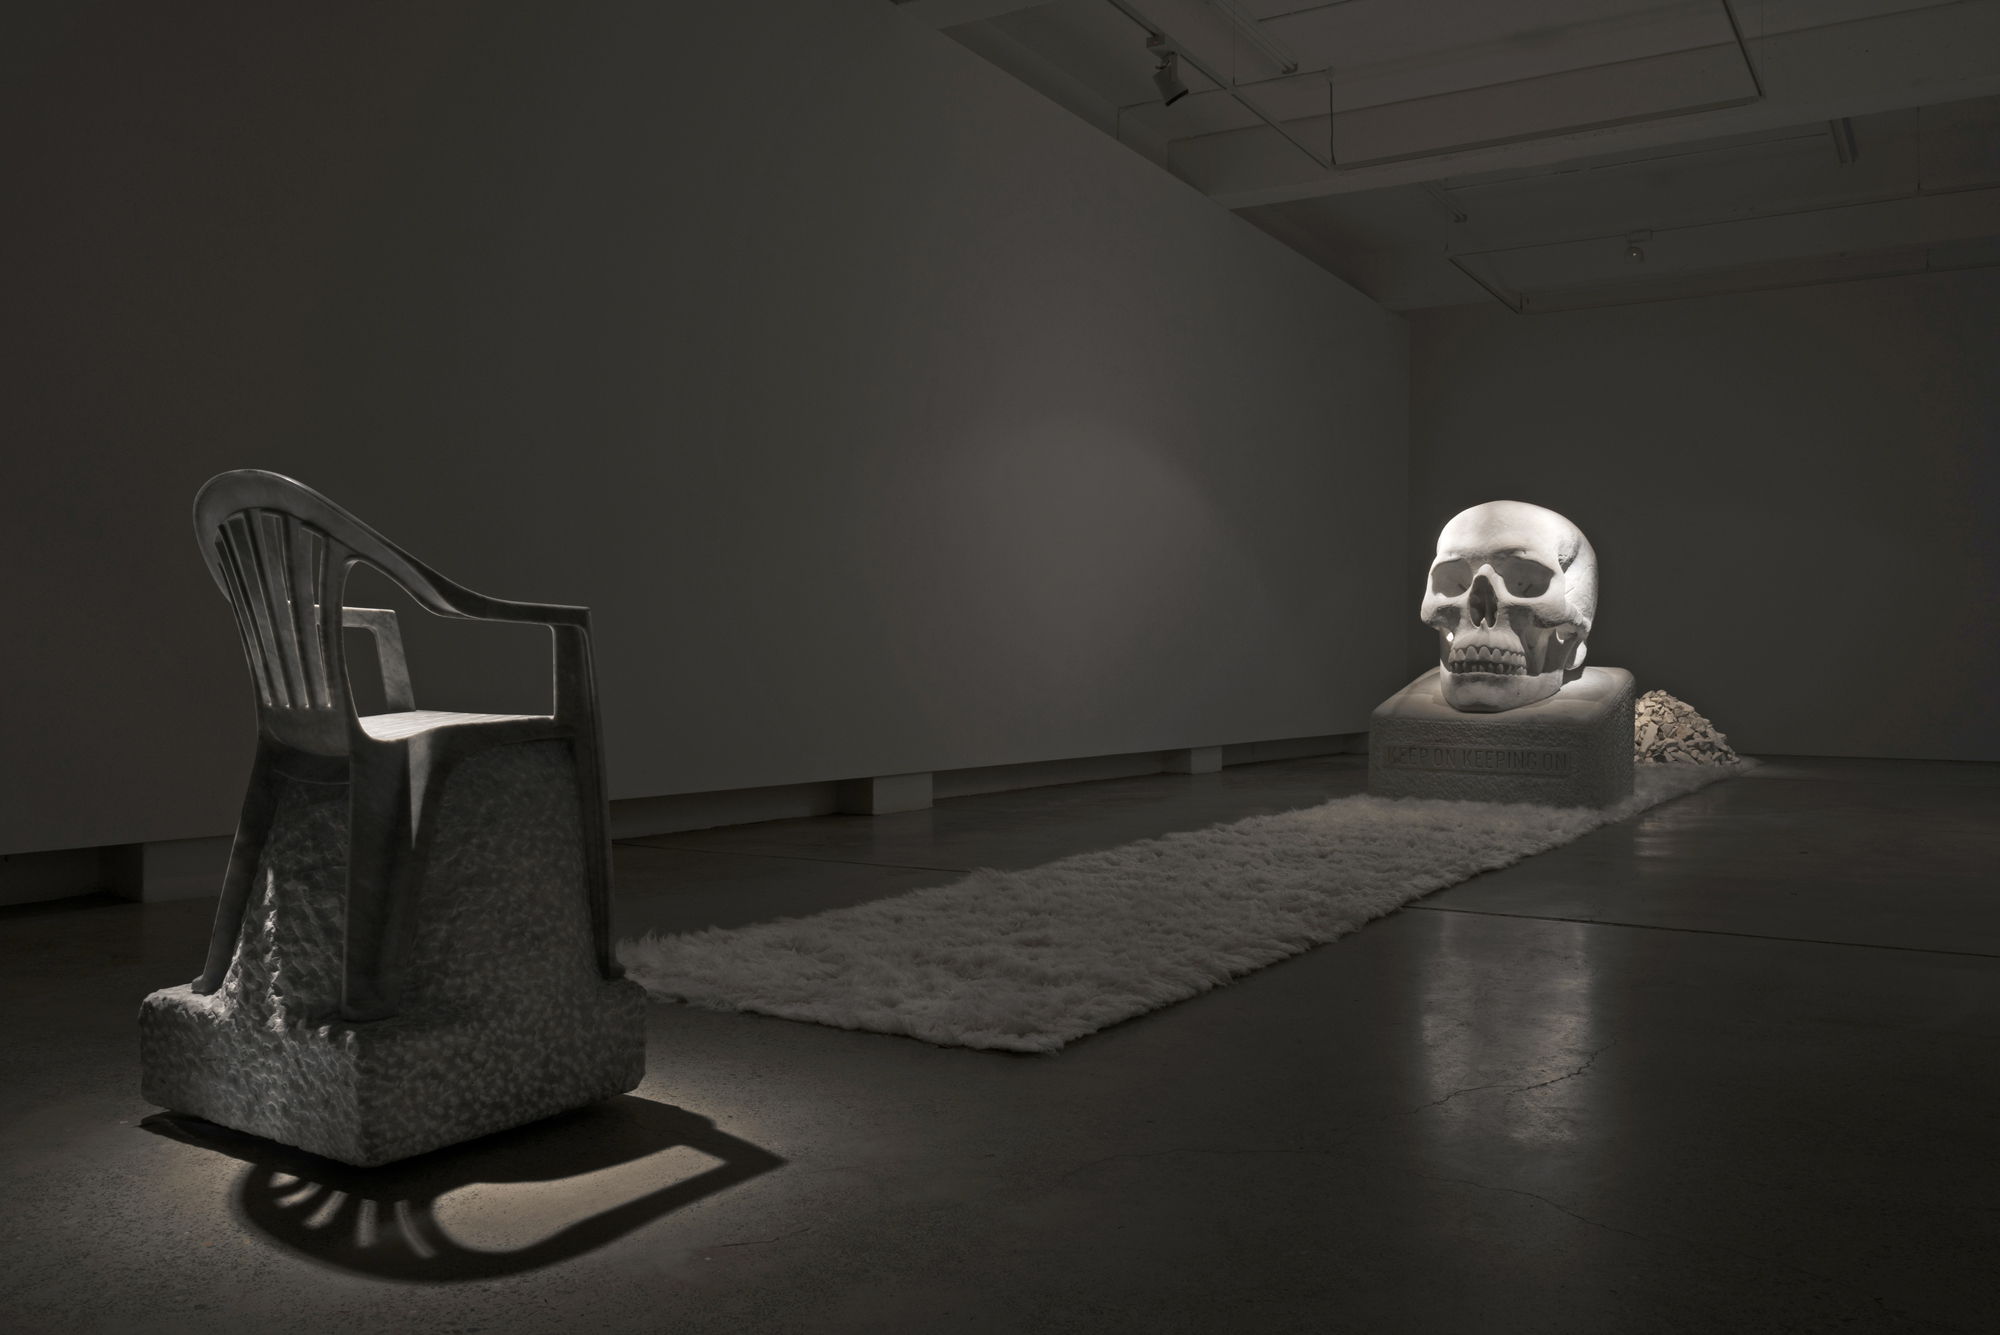 The Monobloc Throne 2017 Bianca Carrara 101 x 54 x 54 cm   Sometimes the Dead are More Alive than the Living 2017 Wombeyan marble, wool rugs and acrylic paint 163 x 120 x 115 cm  Photography: Laura Moore